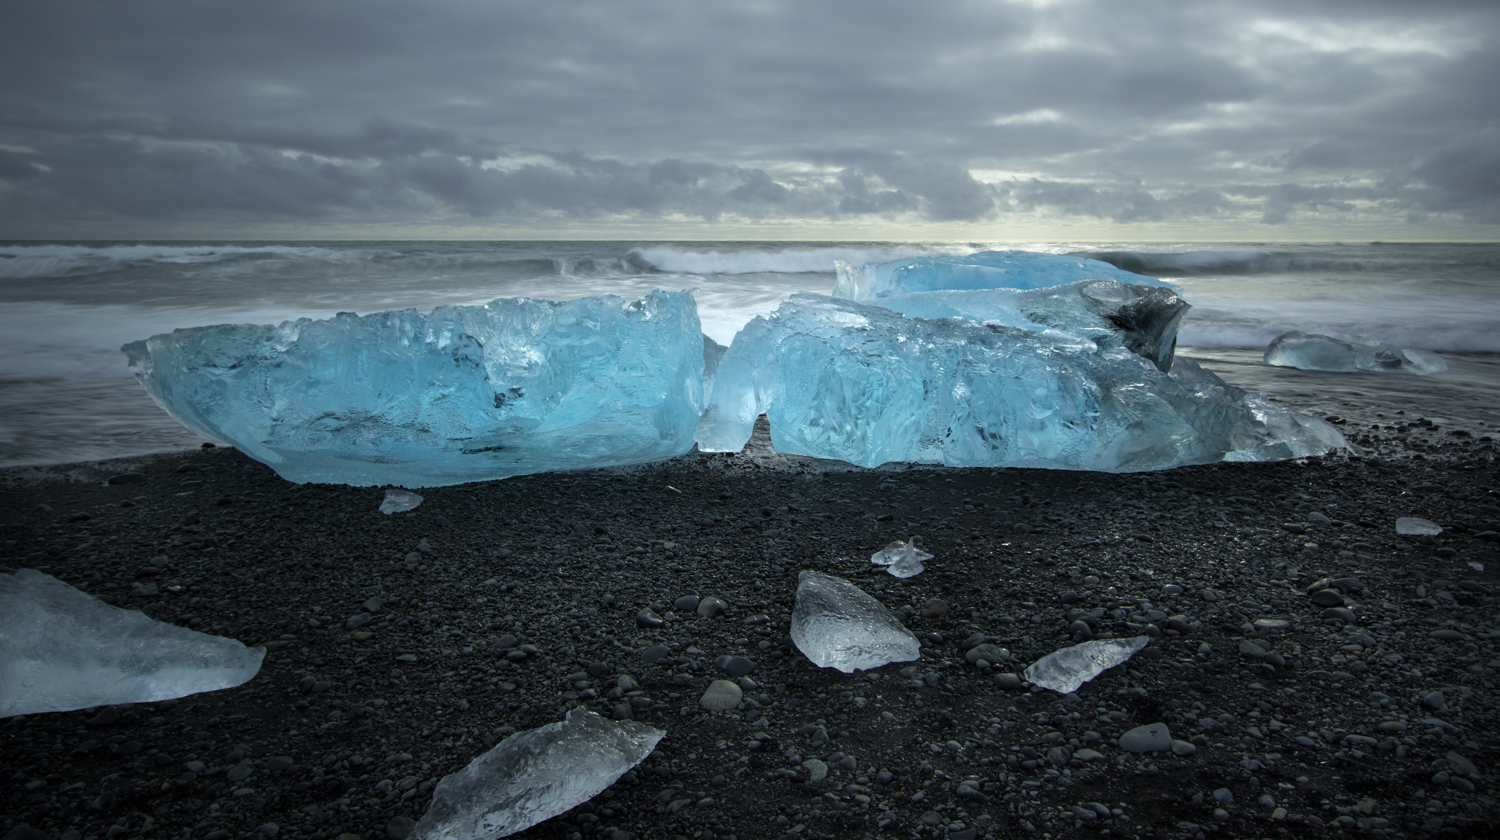 Blue Diamonds of Jökulsárlón  This location has become a cliche for Iceland. But the ice and the black sand draw you in. The fleeting nature of the ice means every day is different, the scene changes often, I could go back again and again.